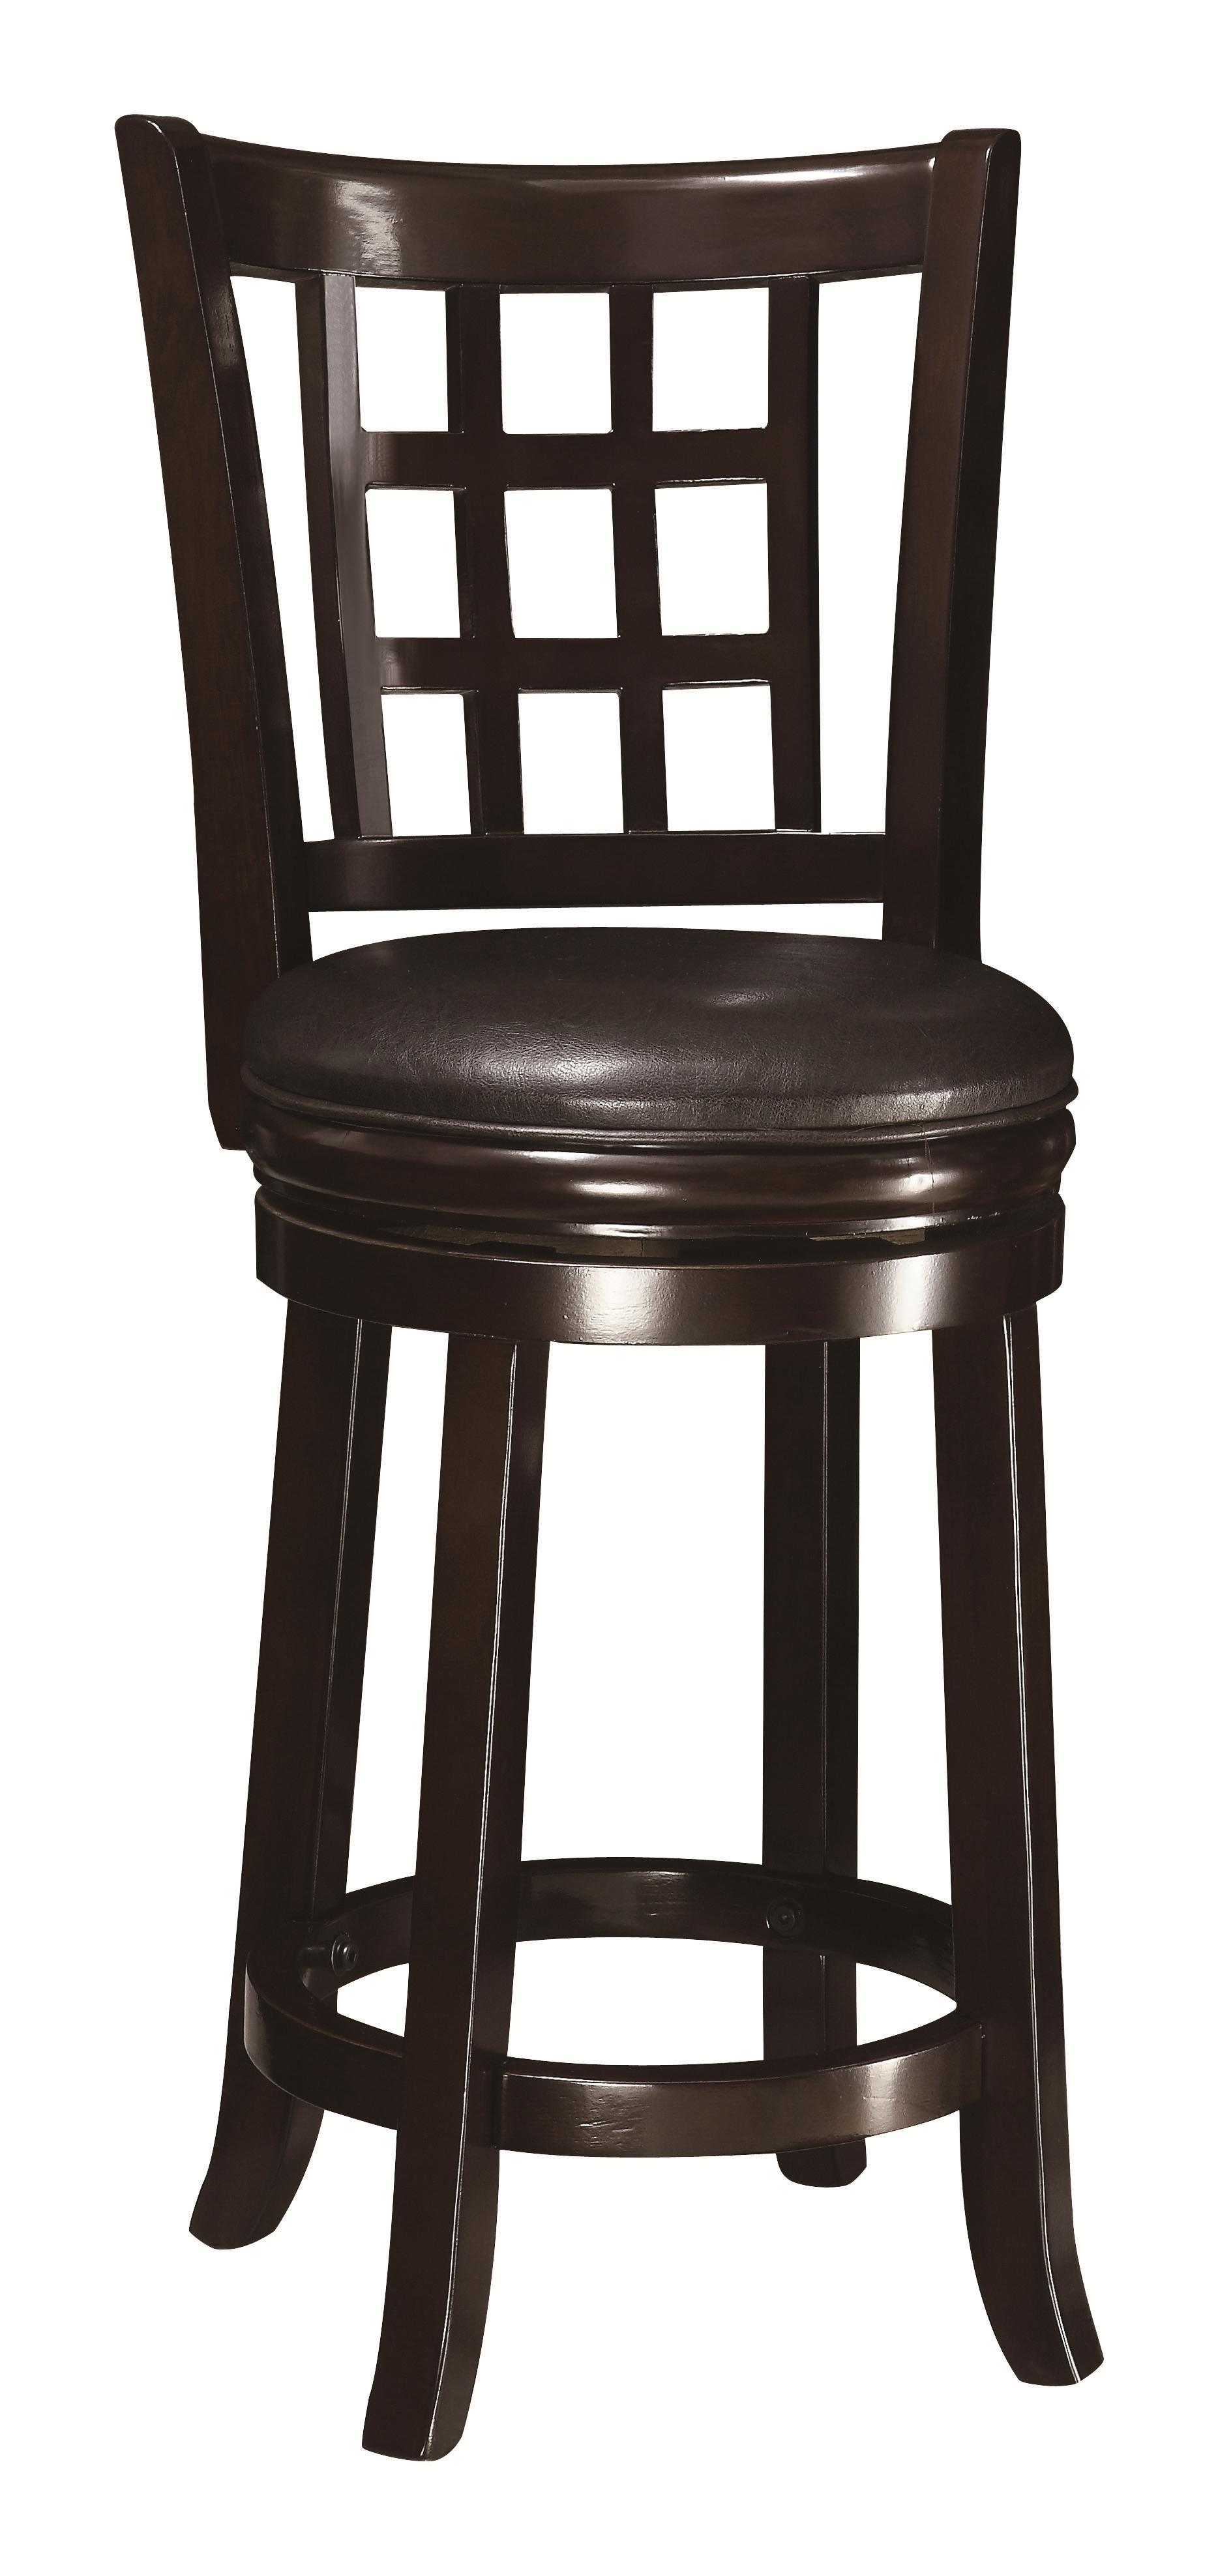 "Coaster Dining Chairs and Bar Stools 24""H Bar Stool - Item Number: 102649"